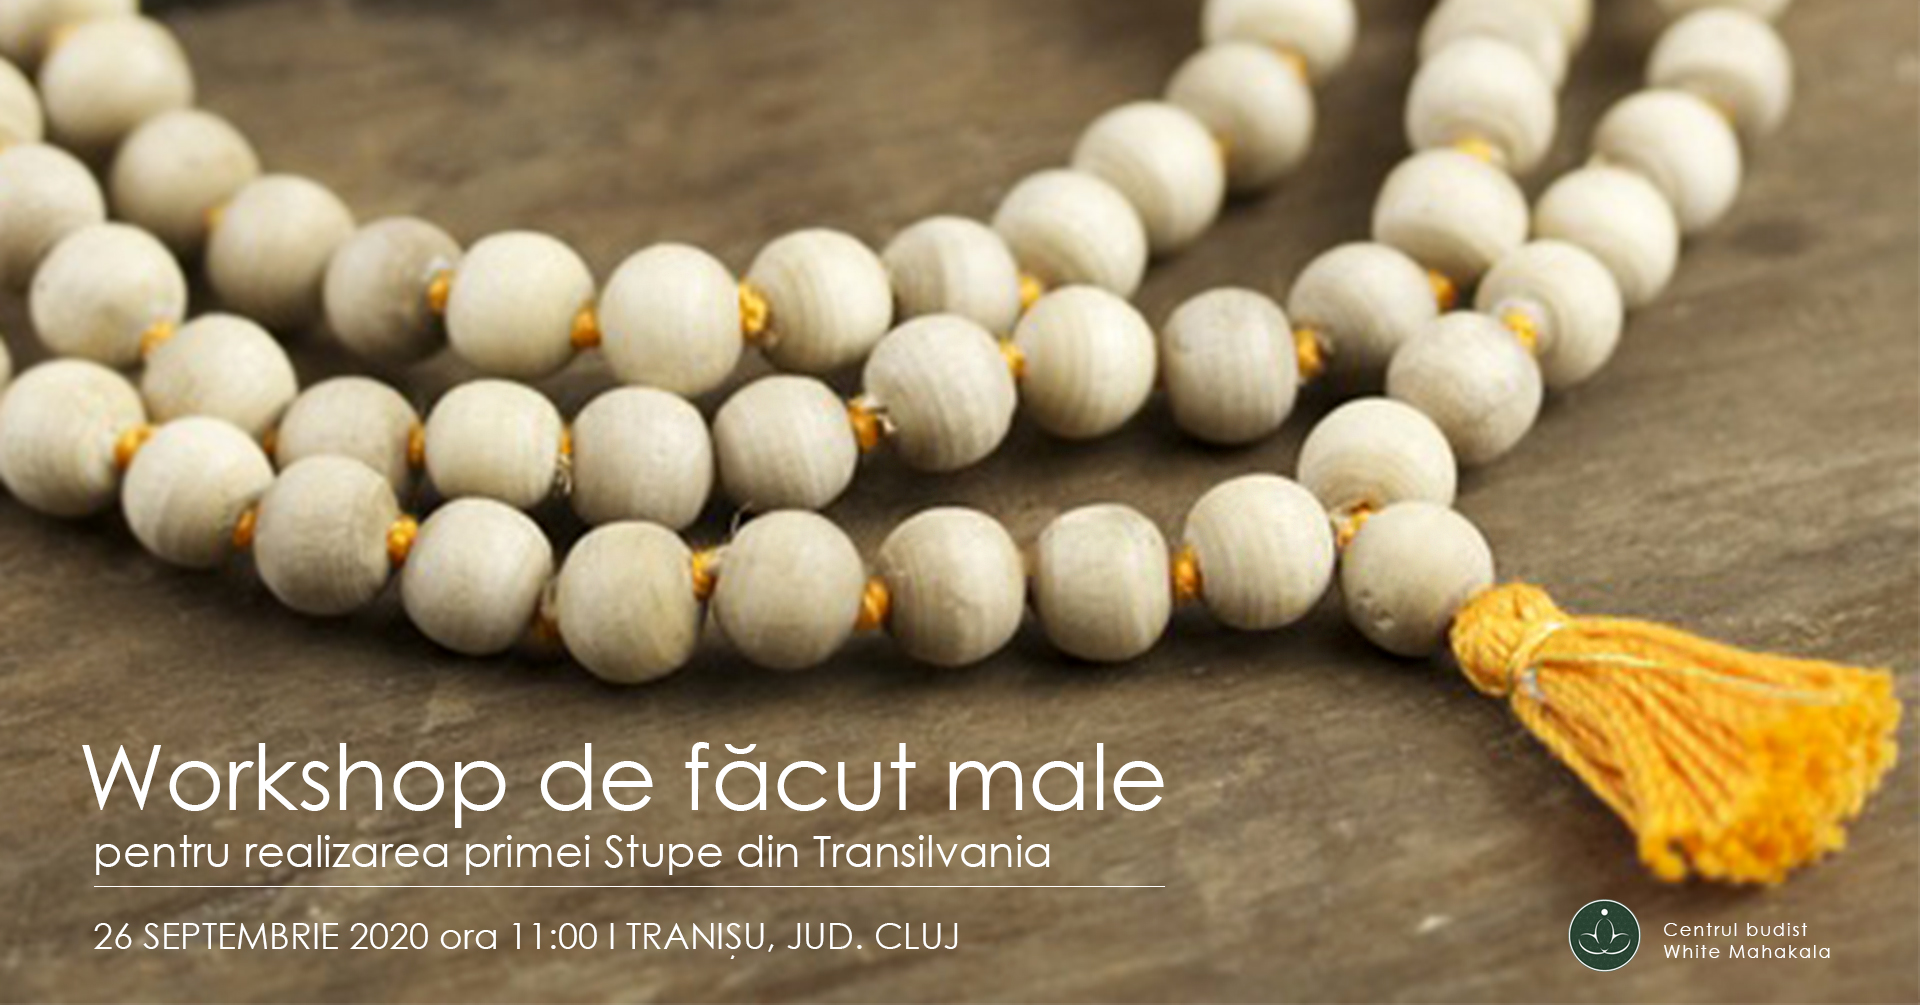 Workshop de facut Male